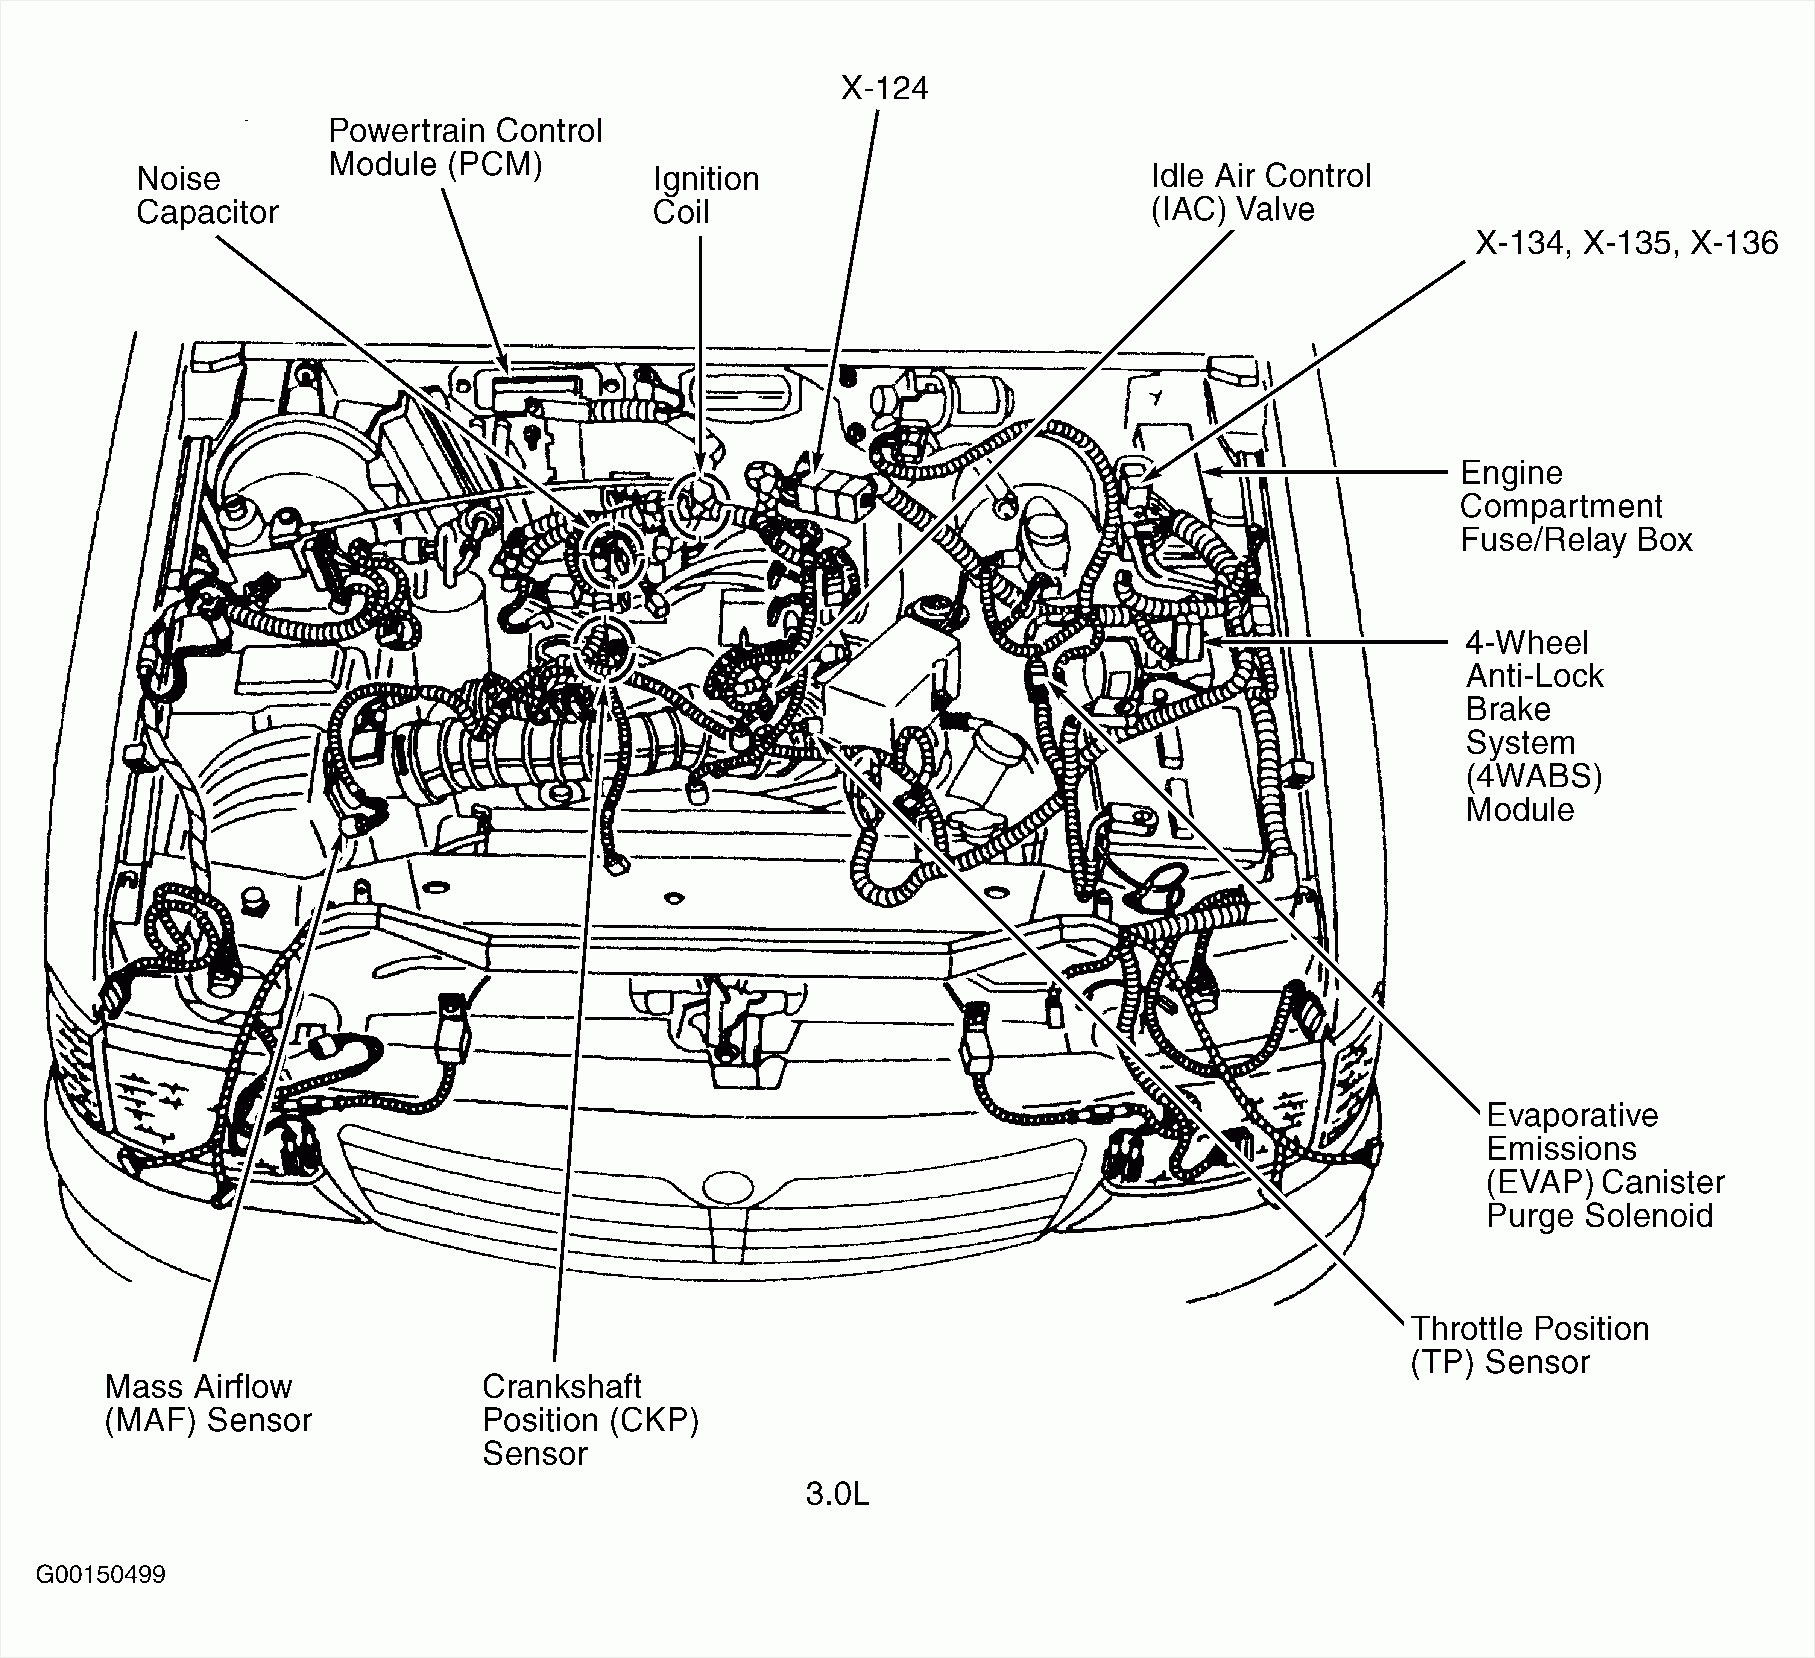 2006 Mazda 3 Engine Diagram Http Wwwpic2flycom 2006mazda3engine